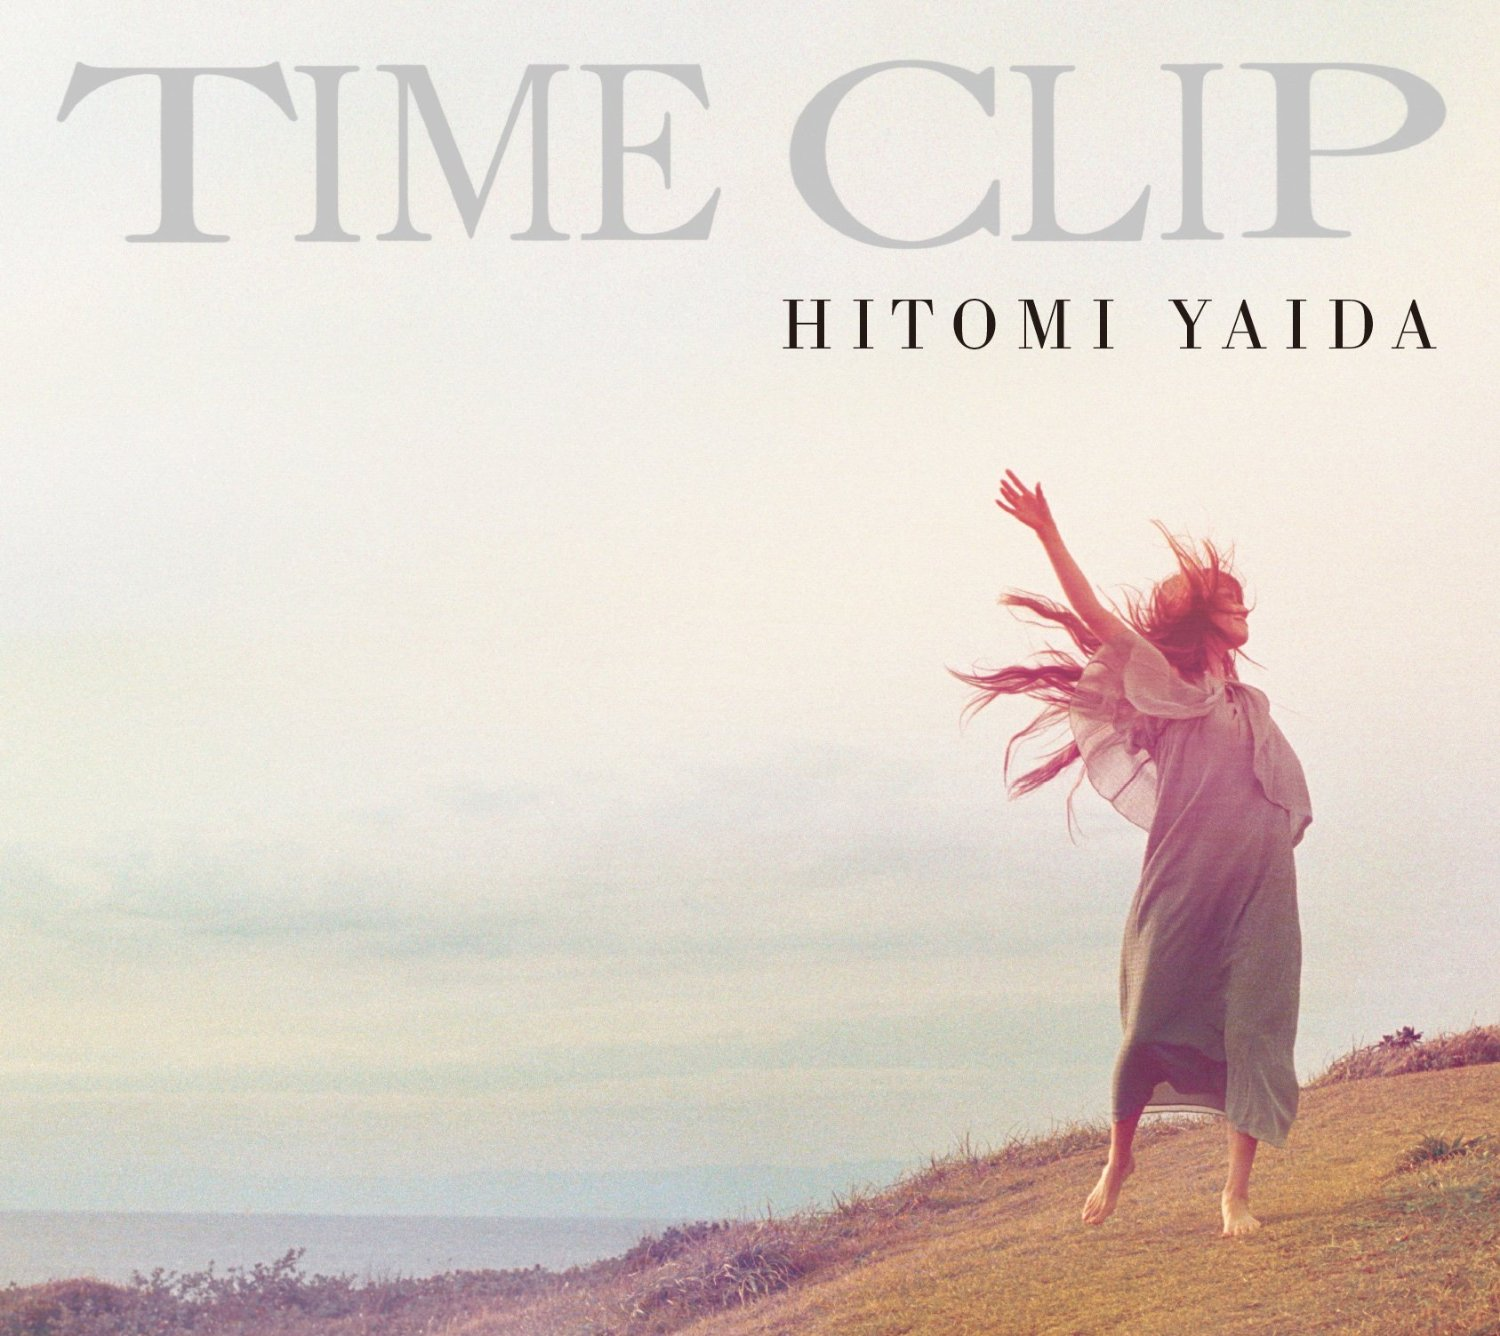 20160329.22.09 Hitomi Yaida - Time clip (Limited edition) cover 1.jpg